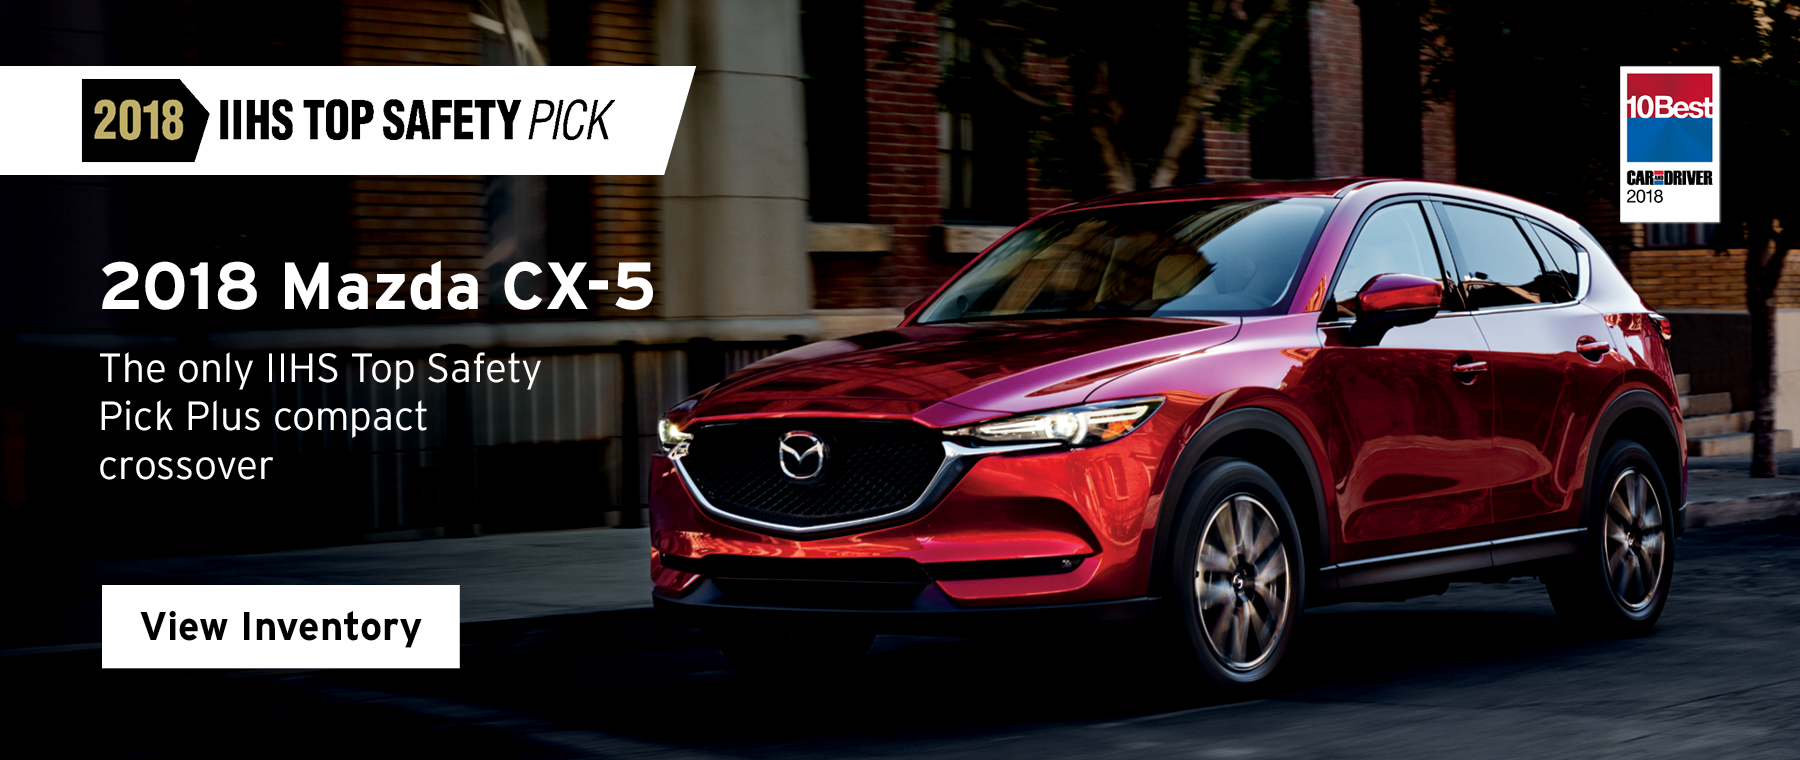 2018 Mazda CX-5 is the only IIHS Top Safety Pick Plus compact crossover. Click here to view inventory.